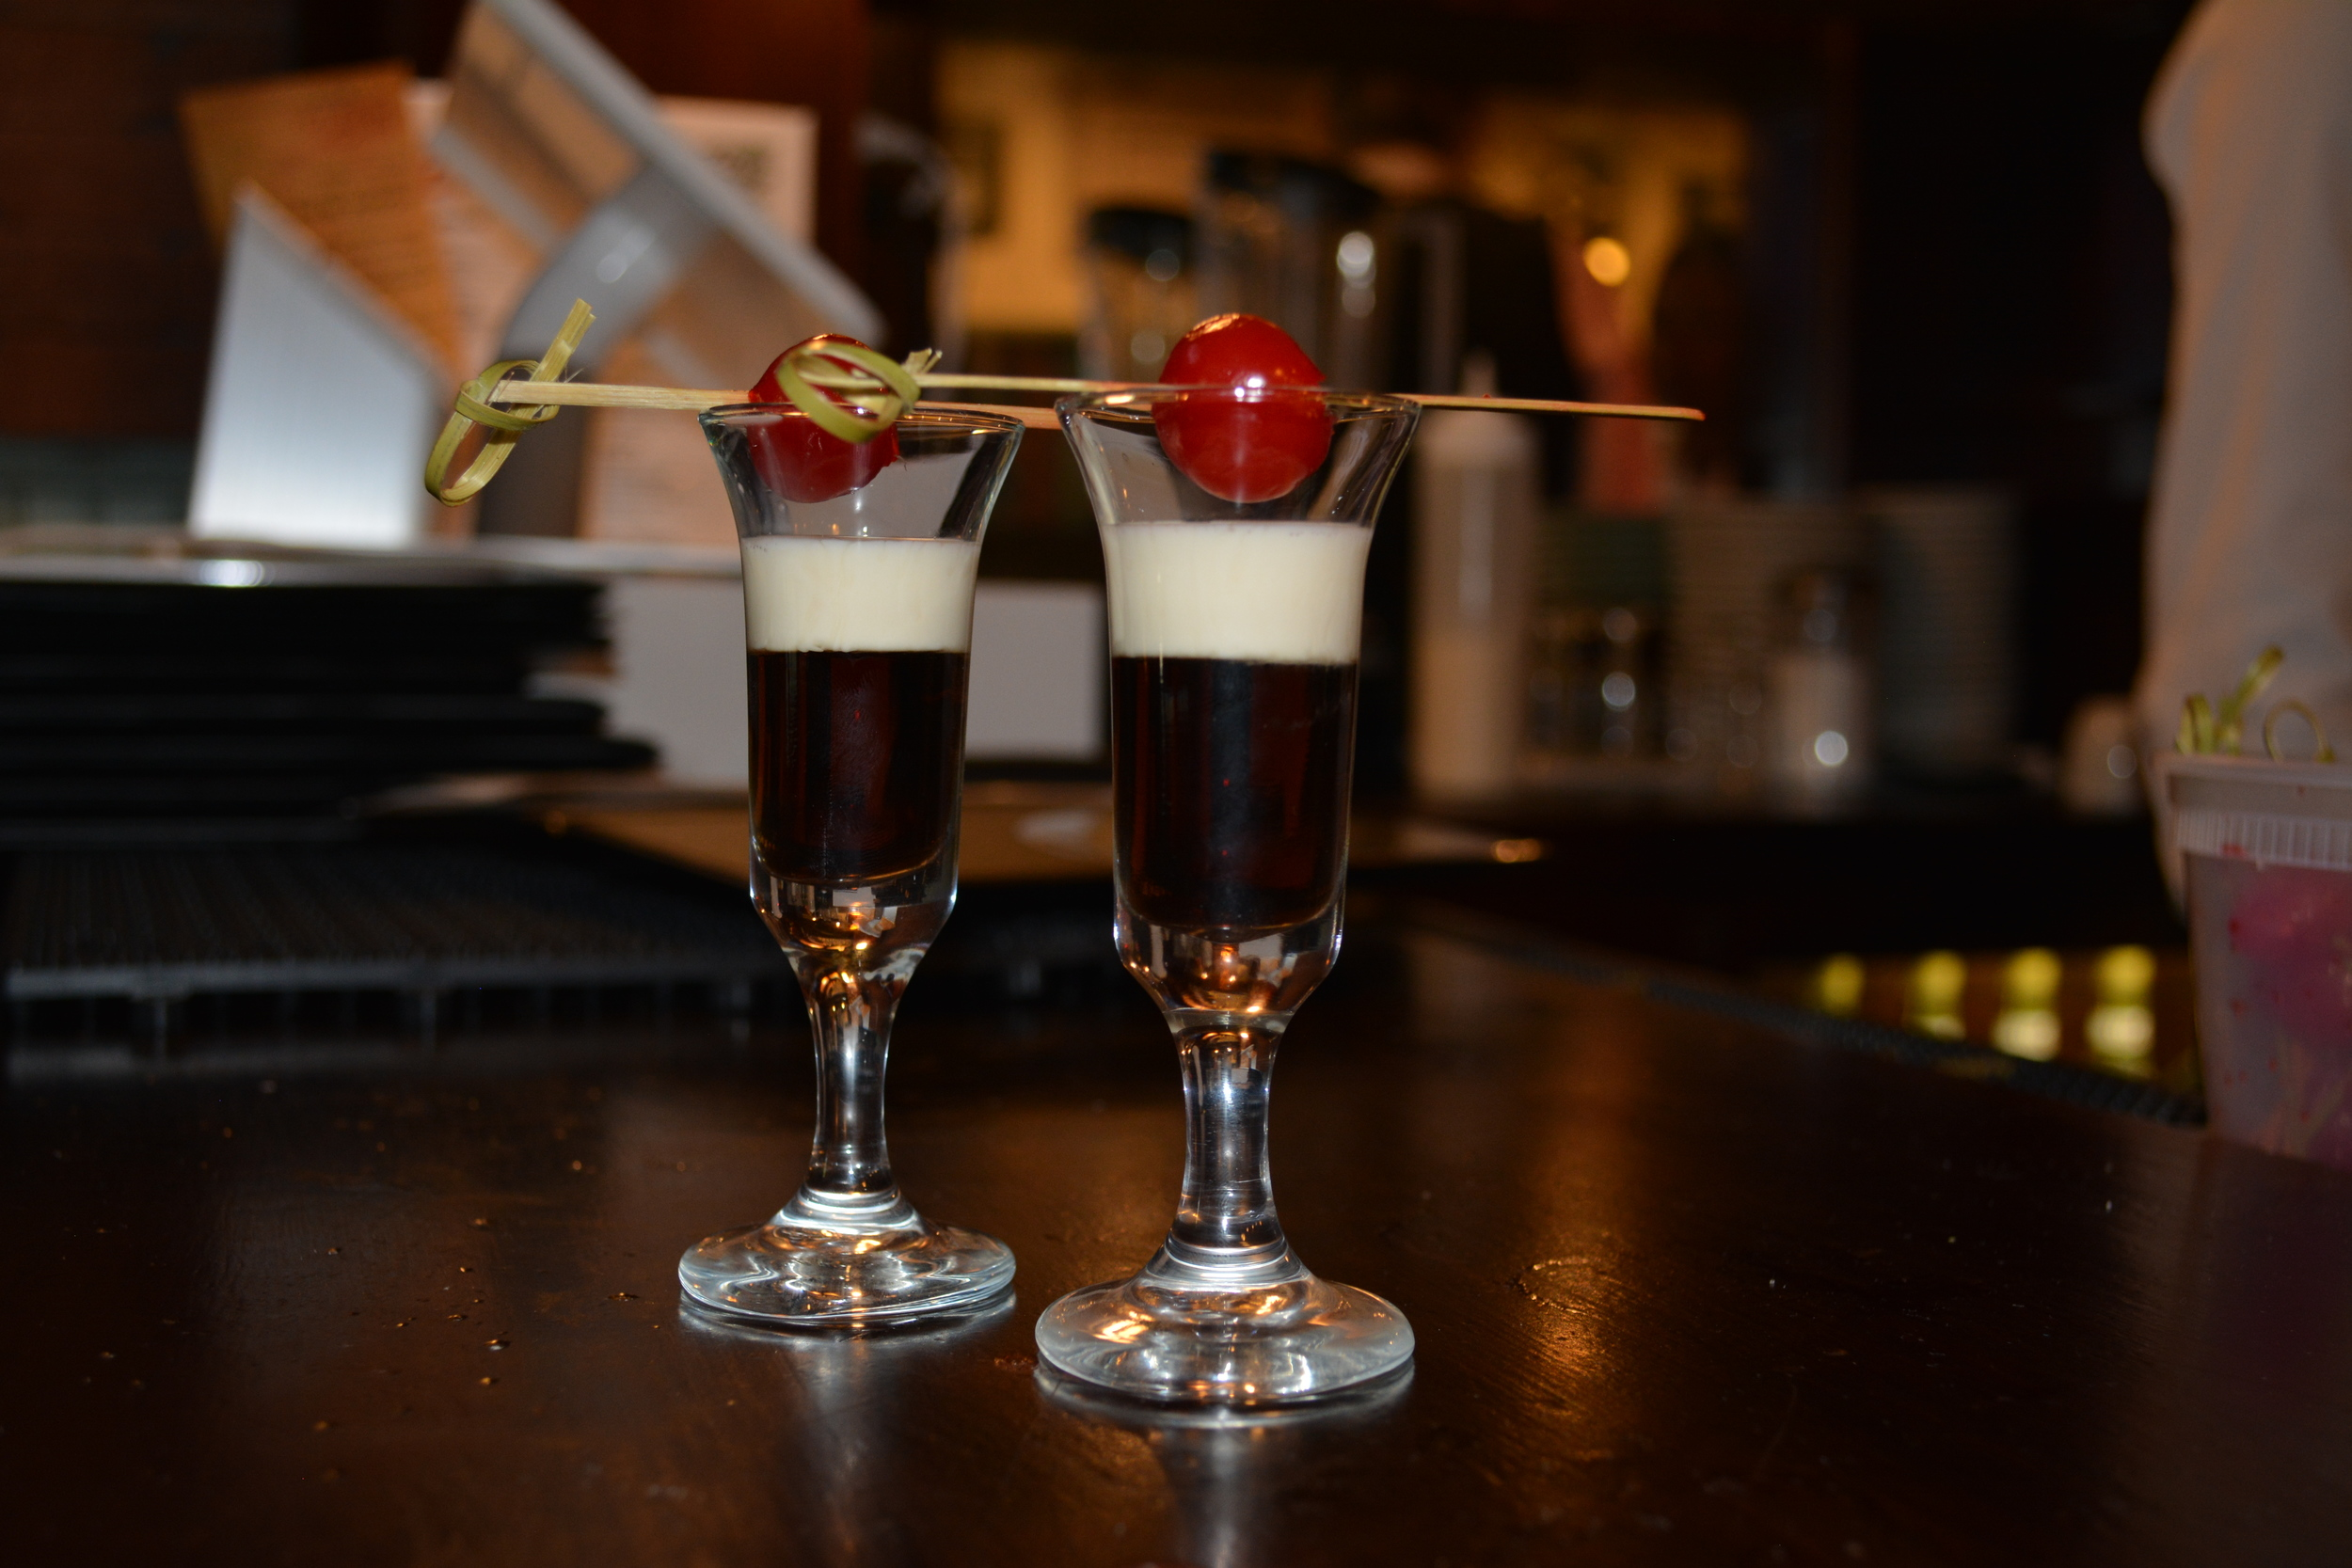 """Every adult is offered an after-dinner drink called """"Don Cellita,"""" or angel kiss, which consists of Creme de Cacao, evaporated milk and a cherry."""